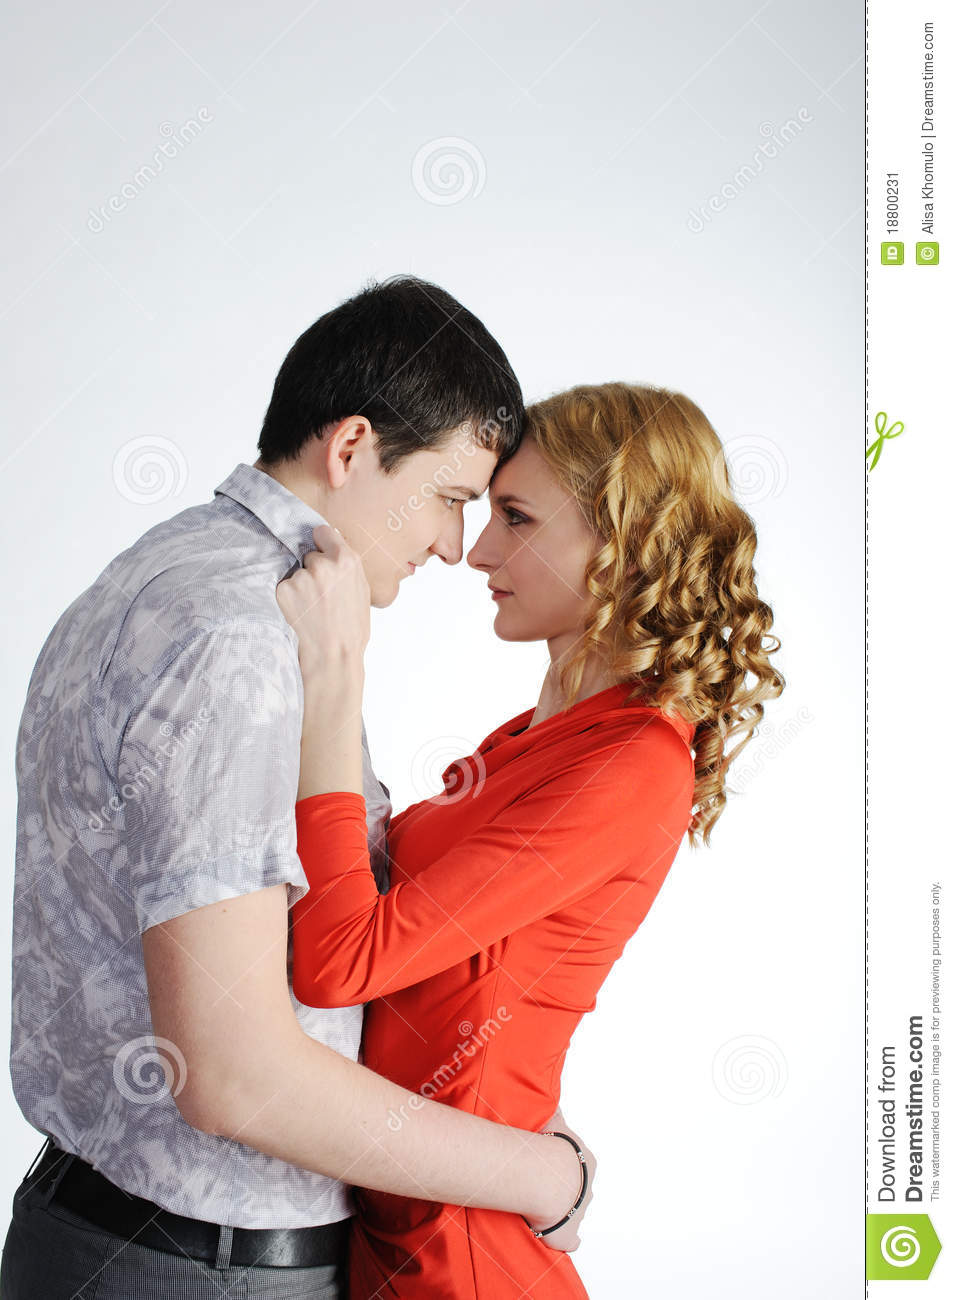 sex videos for married people